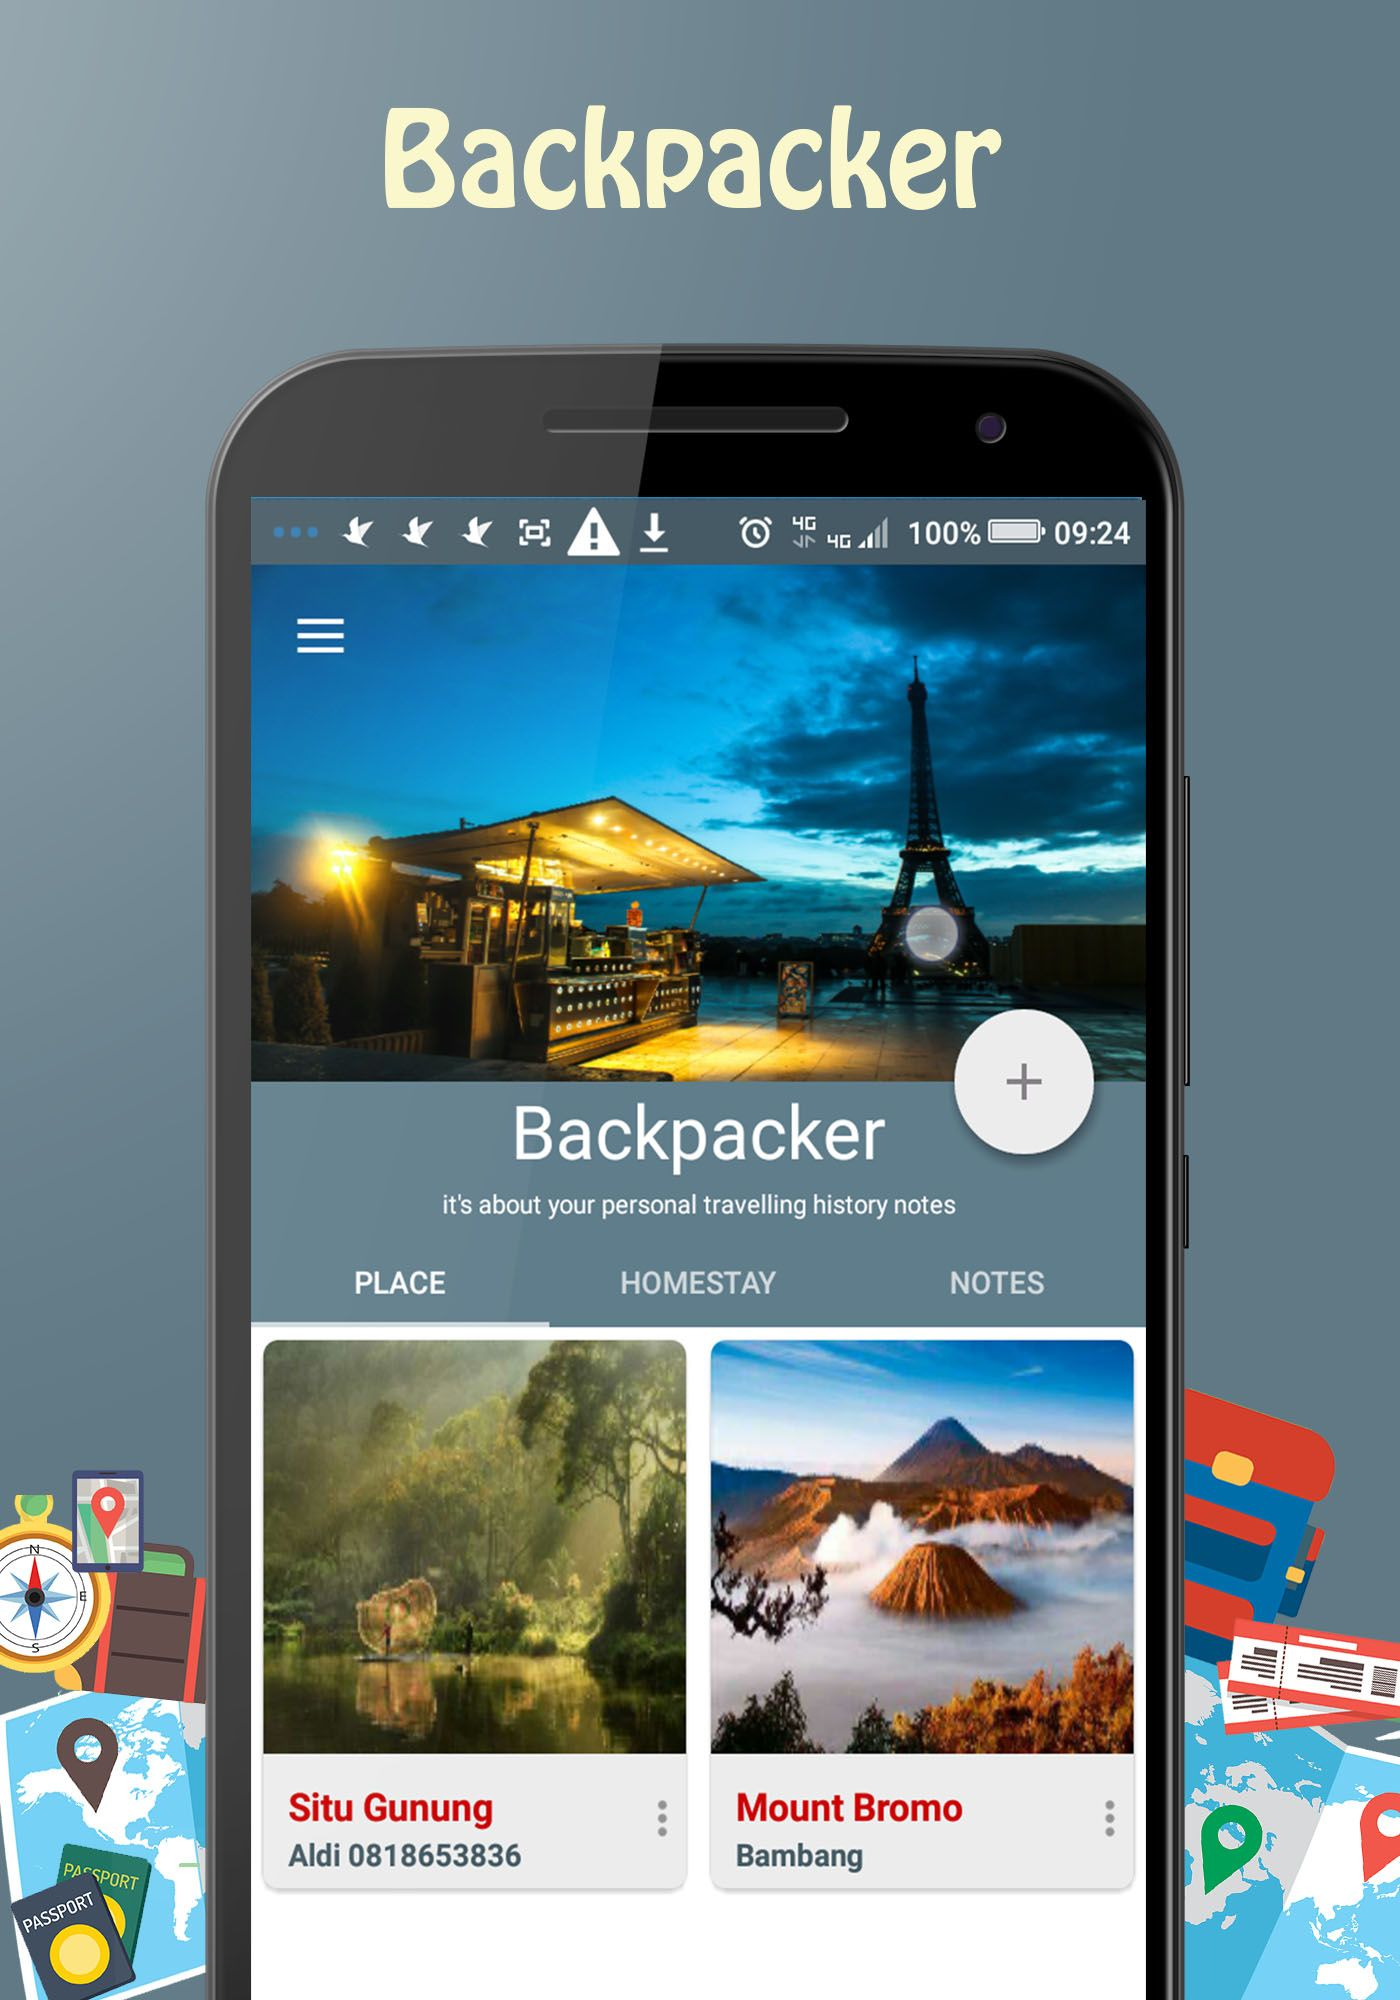 Backpacker - Android Travel App Screenshot 1